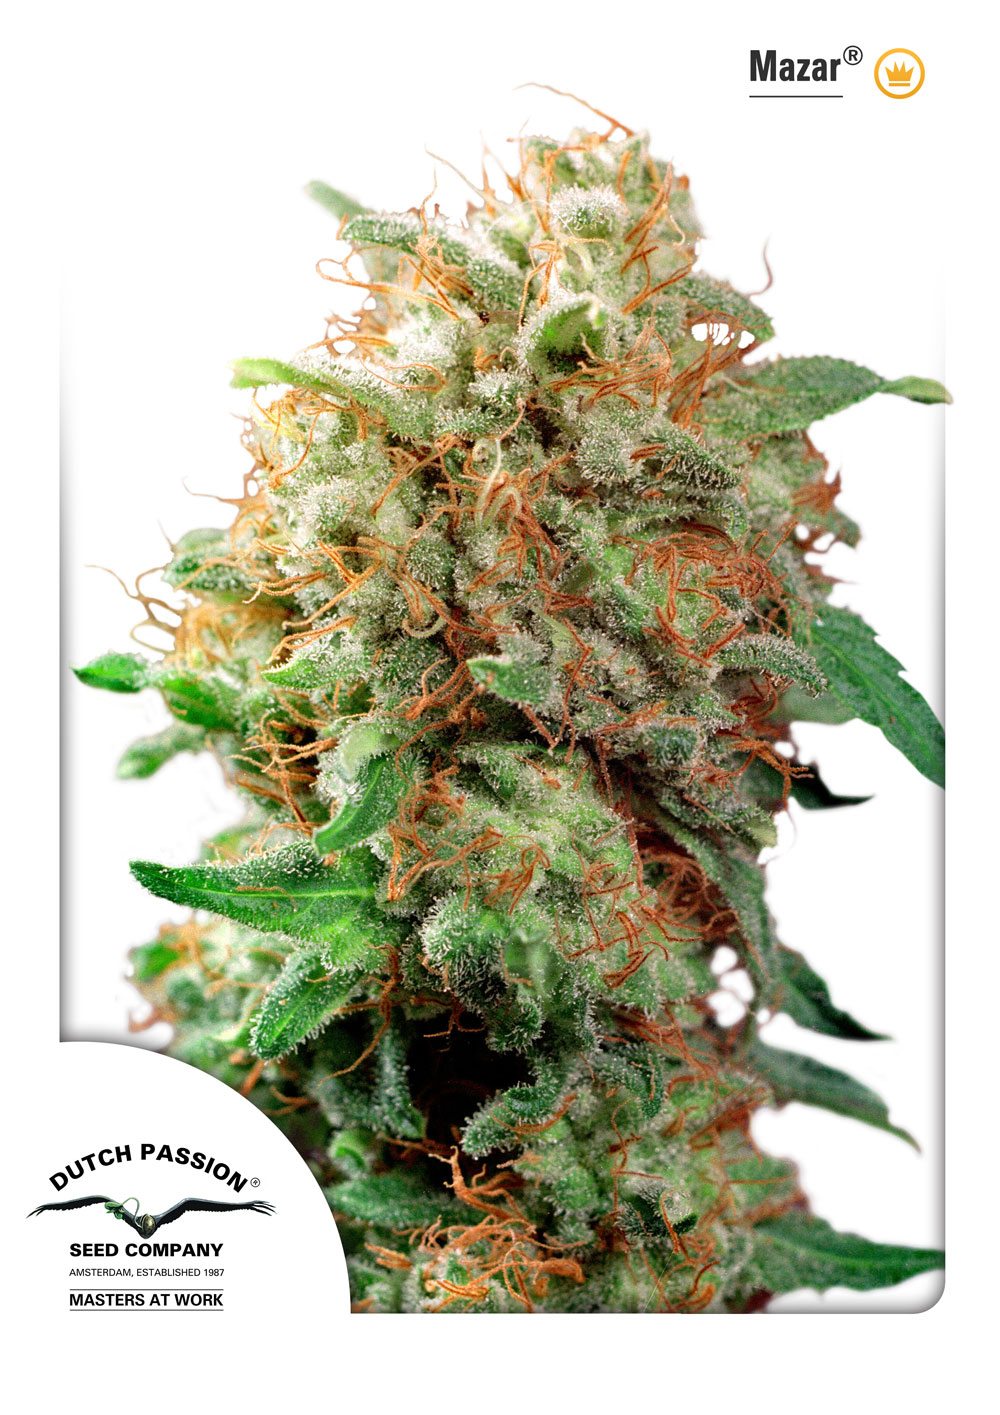 Recenzja Odmiany Mazar od Dutch Passion, Dutch Seeds